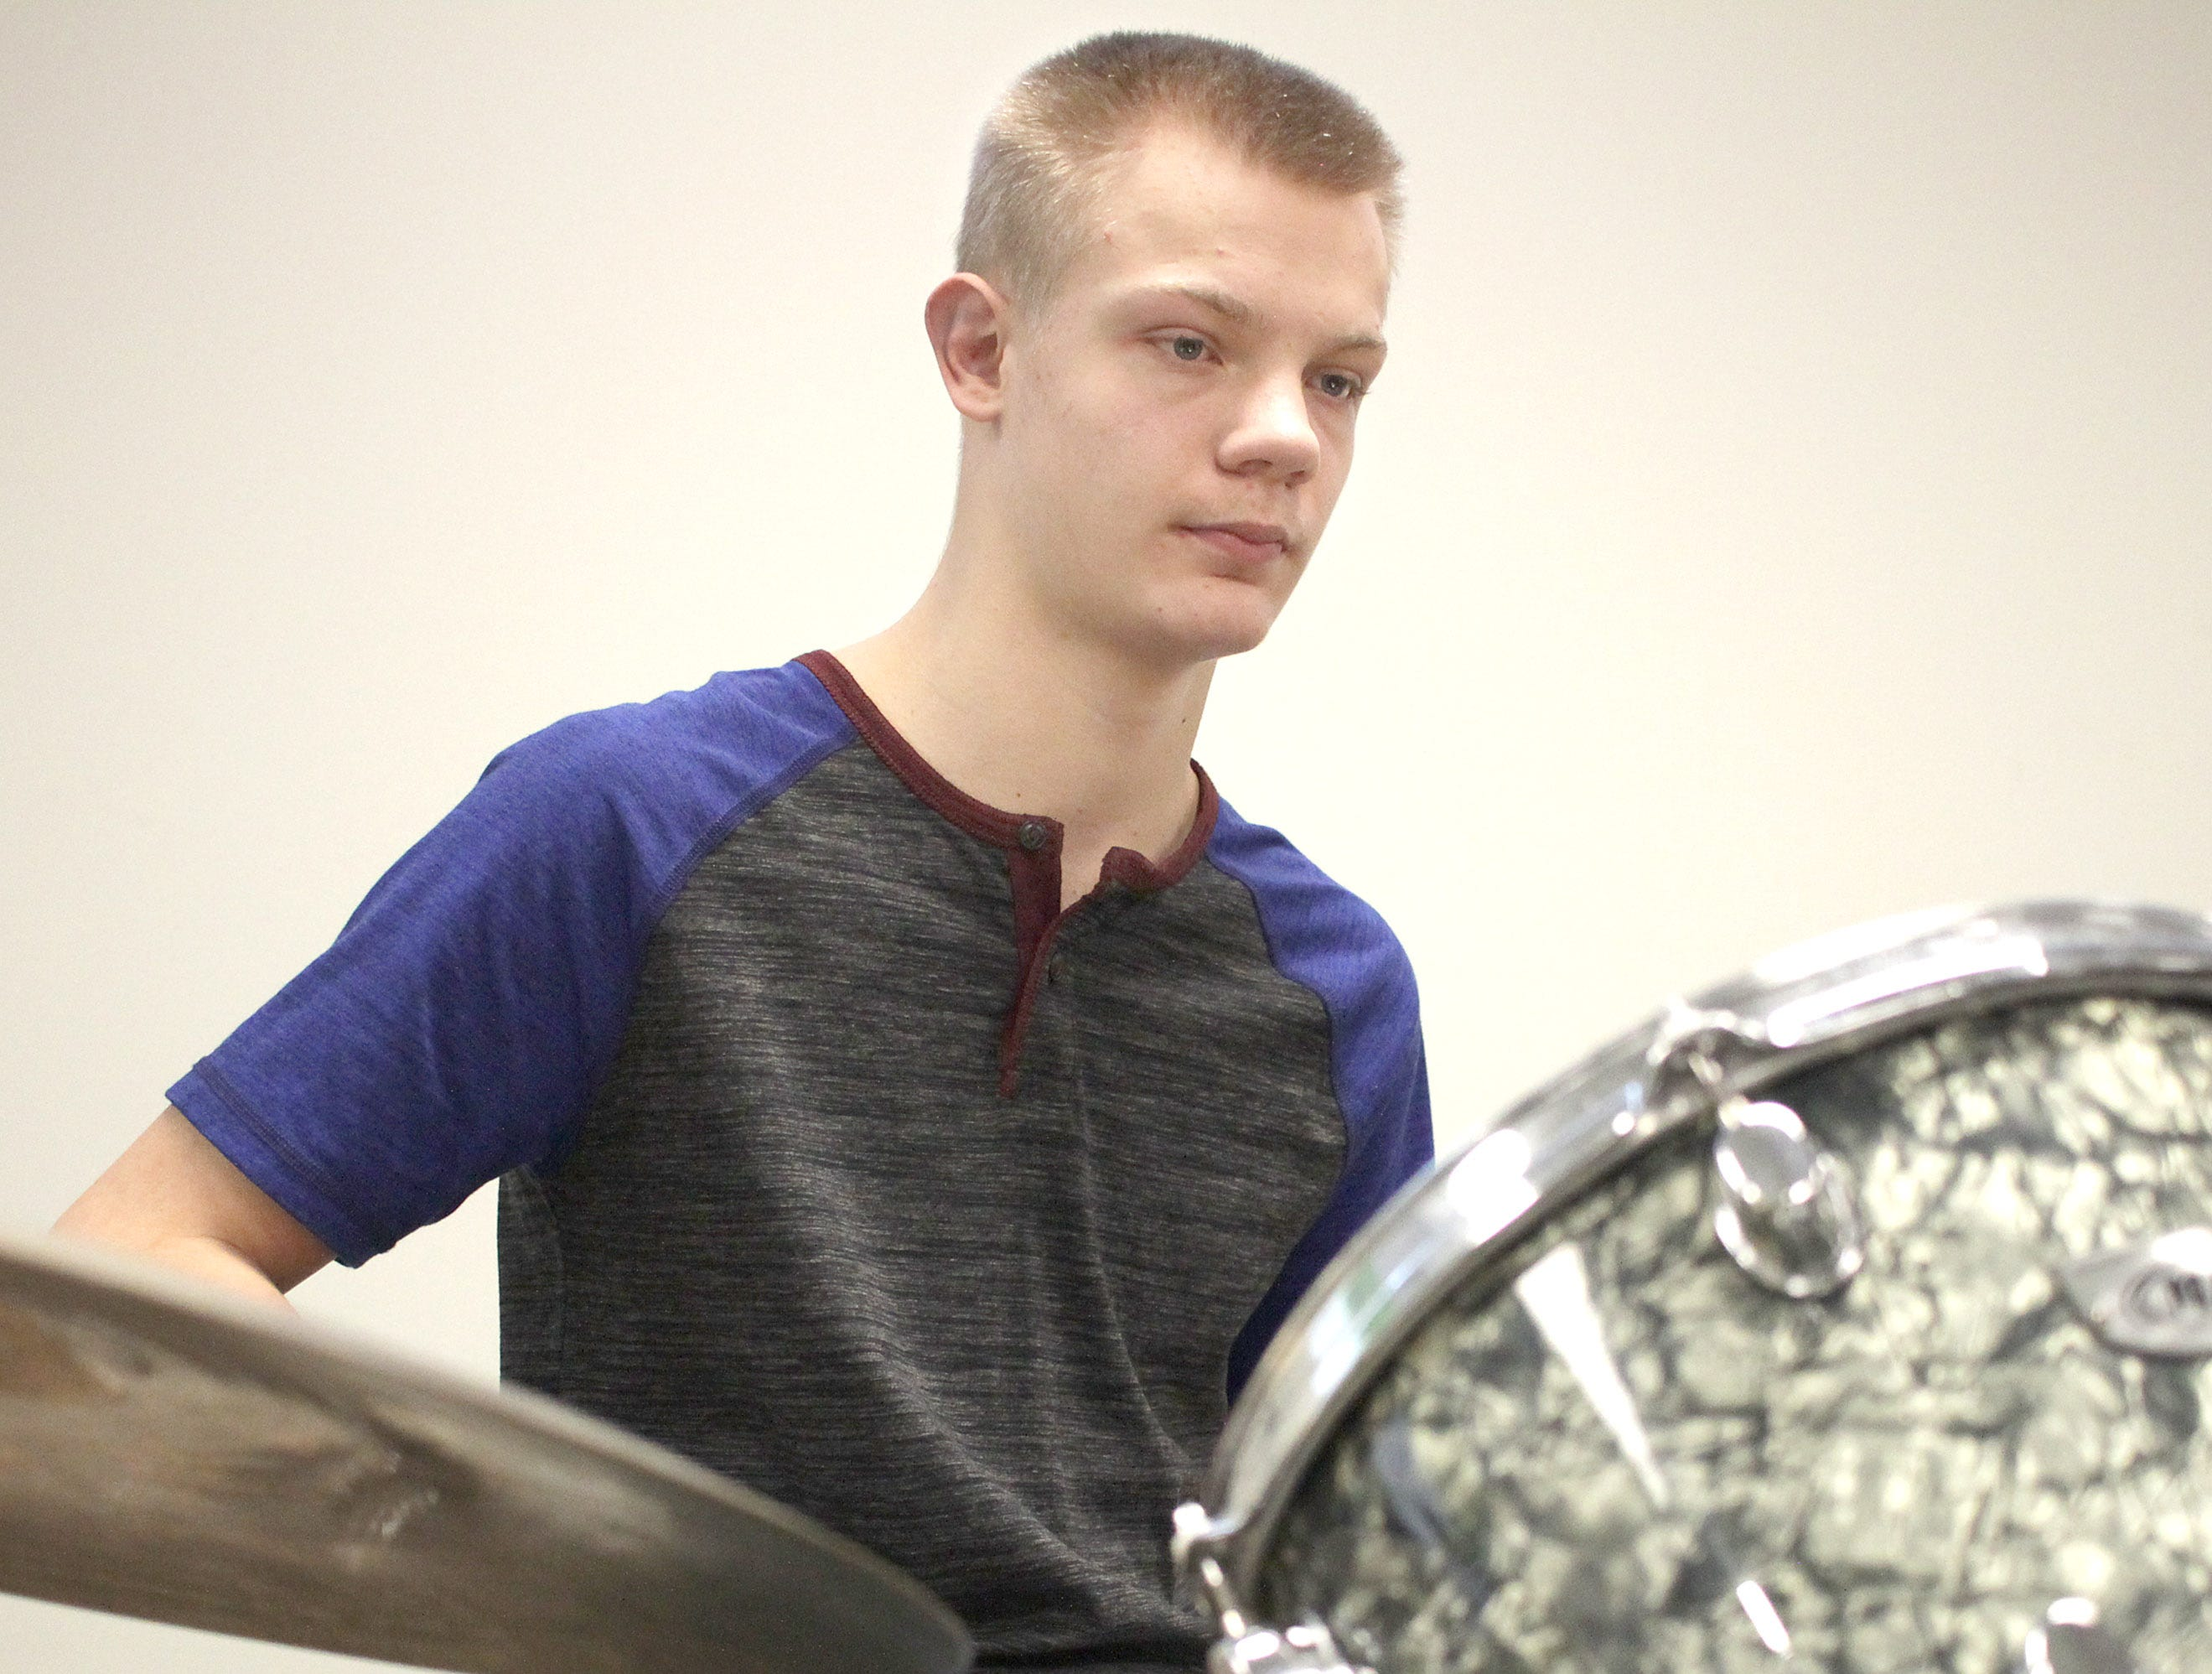 Chase Harness plays the drums at High Schoo Music Day at Volunteer State Community College on Saturday, February 23, 2019.